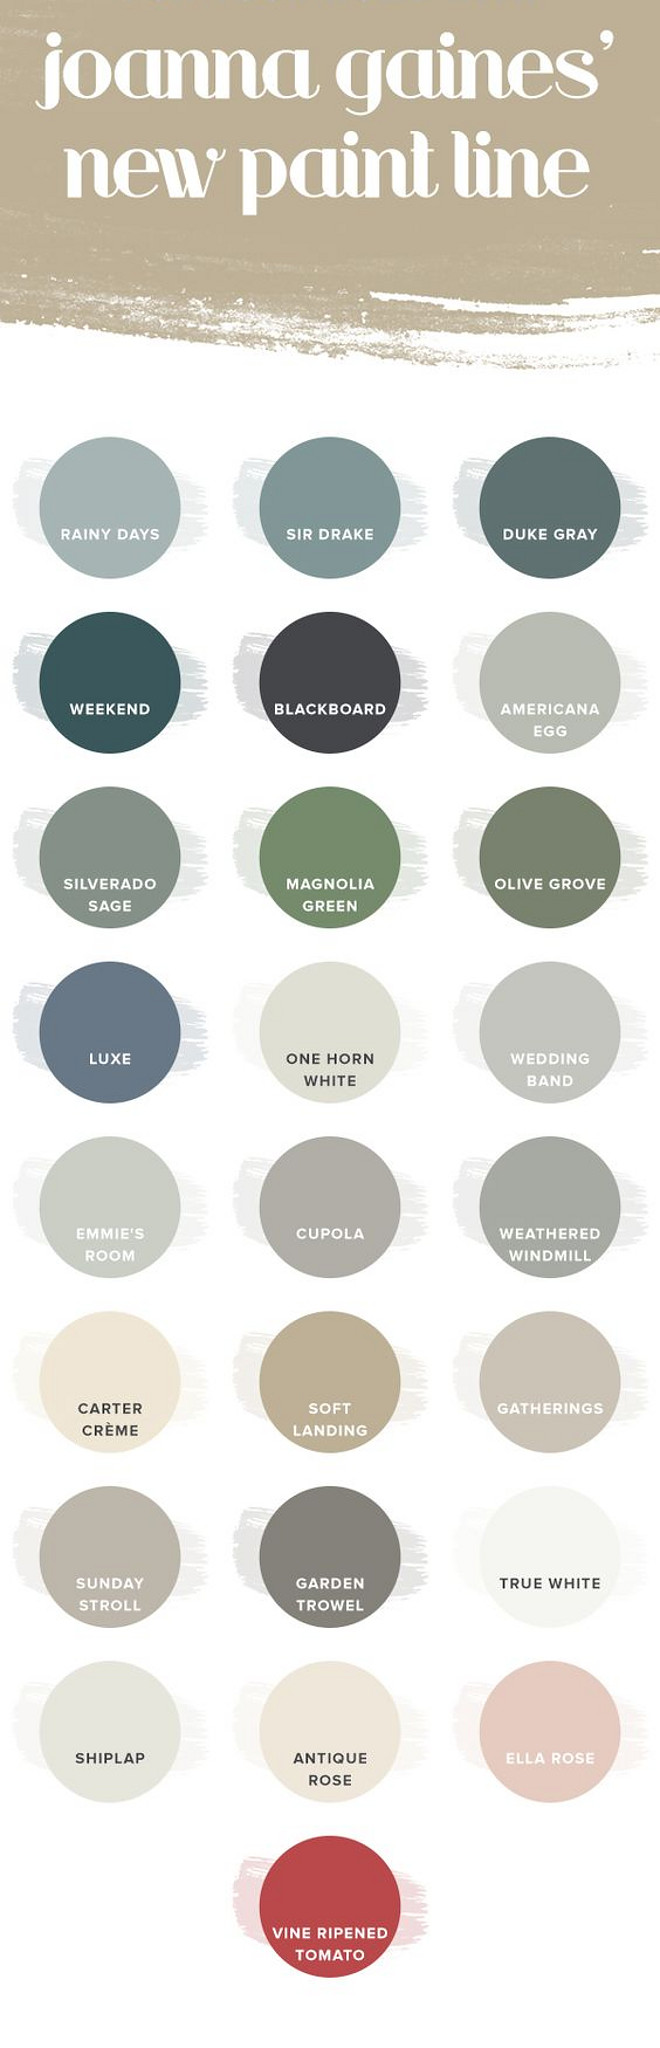 Fixer Upper Joanna Gaines Magnolia Home Paint. Joanna's Favorite Paint Colors. Magnolia Paint Rainy Days. Magnolia Paint Sir Drake. Magnolia Paint Duke Gray. Magnolia Paint Weekend. Magnolia Paint Blackboard. Magnolia Paint Americana Egg. Magnolia Paint Silverado Sage. Magnolia Paint Magnolia Green. Magnolia Paint Olive Grove. Magnolia Paint Luxe. Magnolia Paint One Horn White. Magnolia Paint Wedding Band. Magnolia Paint Emmie's Room. Magnolia Paint Cupola. Magnolia Paint Weathered Windmill. Magnolia Paint Carter Creme. Magnolia Paint Soft Landing. Magnolia Paint Gatherings. Magnolia Paint Sunday Stroll. Magnolia Paint Garden Trowel. Magnolia Paint True White. Magnolia Paint Shiplap. Magnolia Paint Antique Rose. Magnolia Paint Ella Rose. Magnolia Paint Vine Ripened Tomato. #MagnoliaPaint #MagnoliaPaints #FixerUpperPaintColors #FixerUpper #JoannaGaines #JoannaGainesPaintColors #MagnoliaHome #MagnoliaHomePaint #MagnoliaMarket #JoannasFavoritePaintColors Via Today Show.